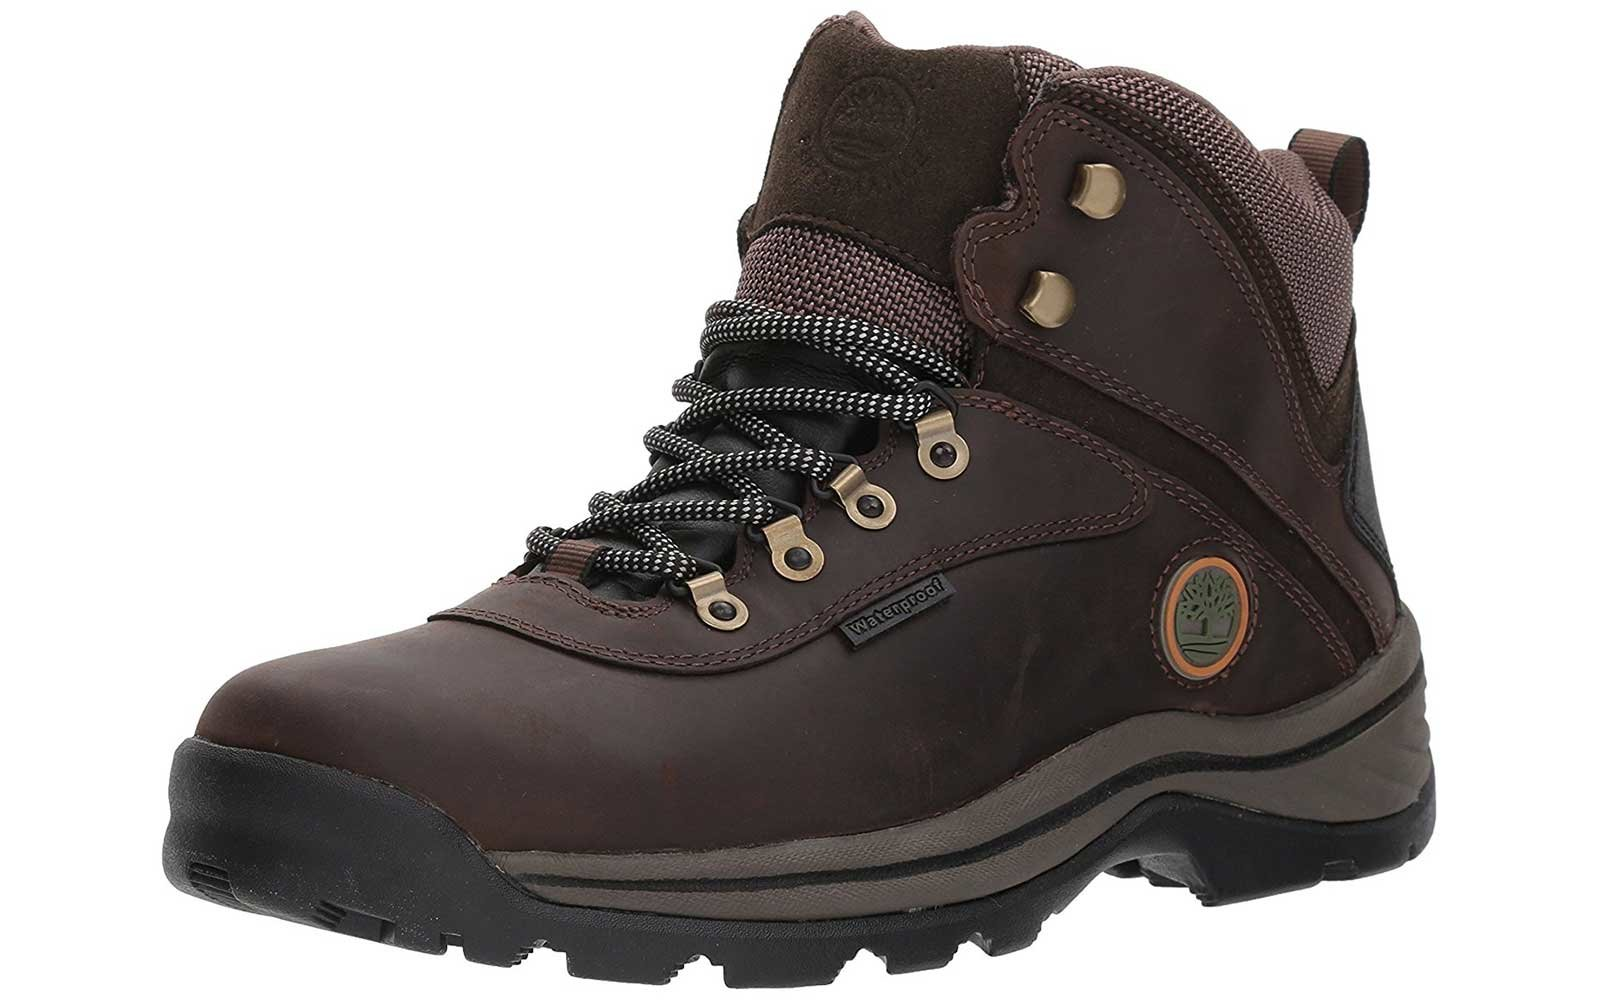 Timberland hiking shoes for men